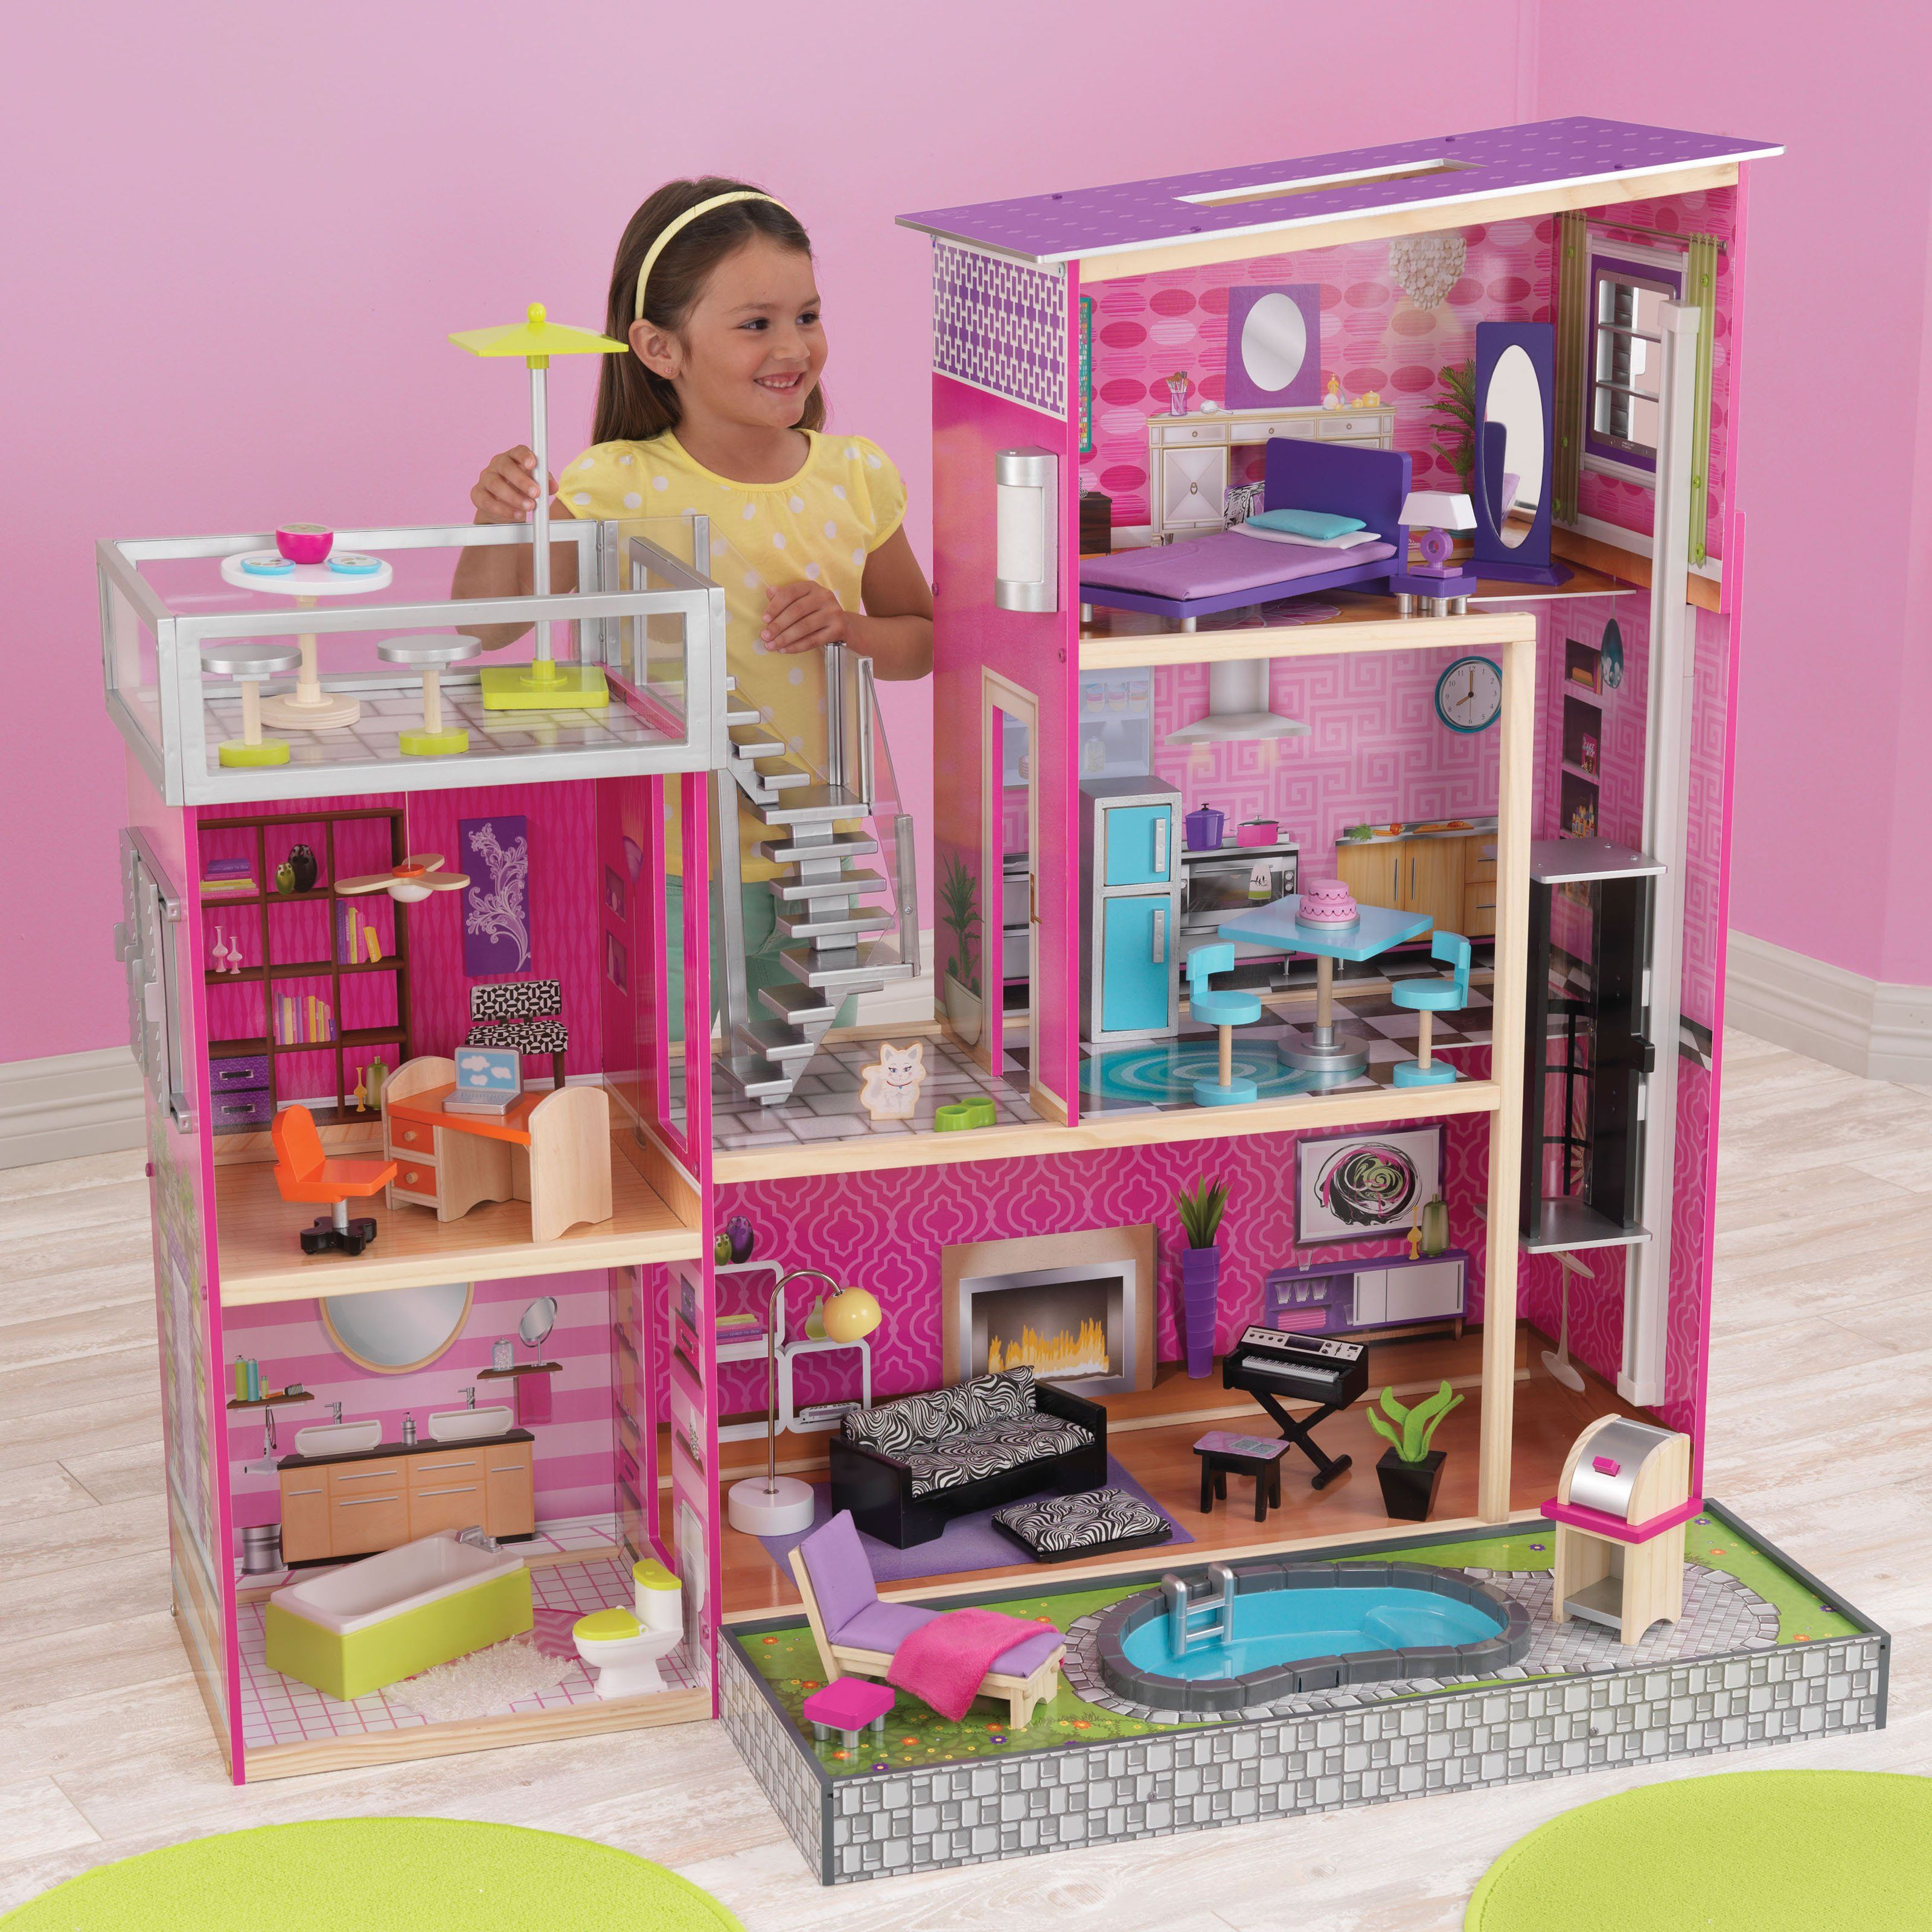 Kidkraft 65833 Uptown Wooden Dolls House With Furniture And Accessories 3 Play